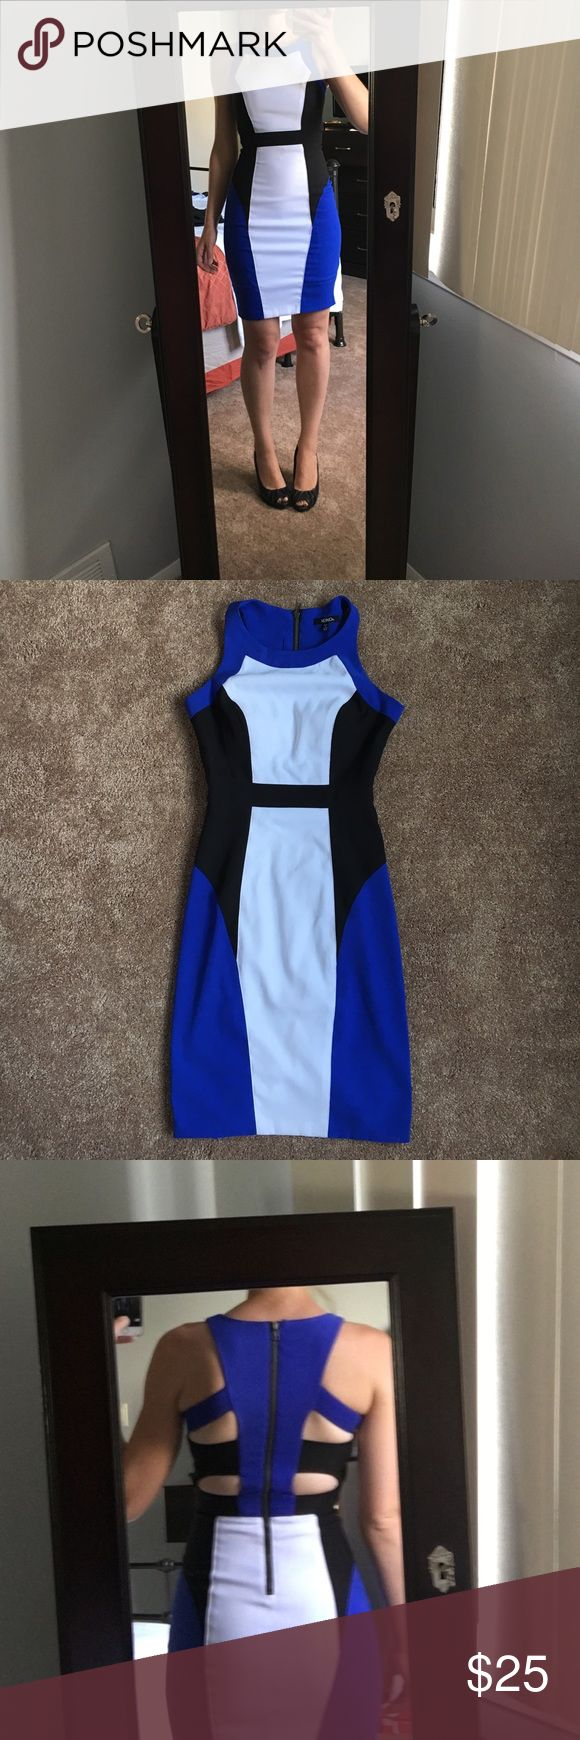 XOXO Dress XOXO women's dress. Form fitting and has built in padding so no bra is needed. Excellent condition XOXO Dresses Mini